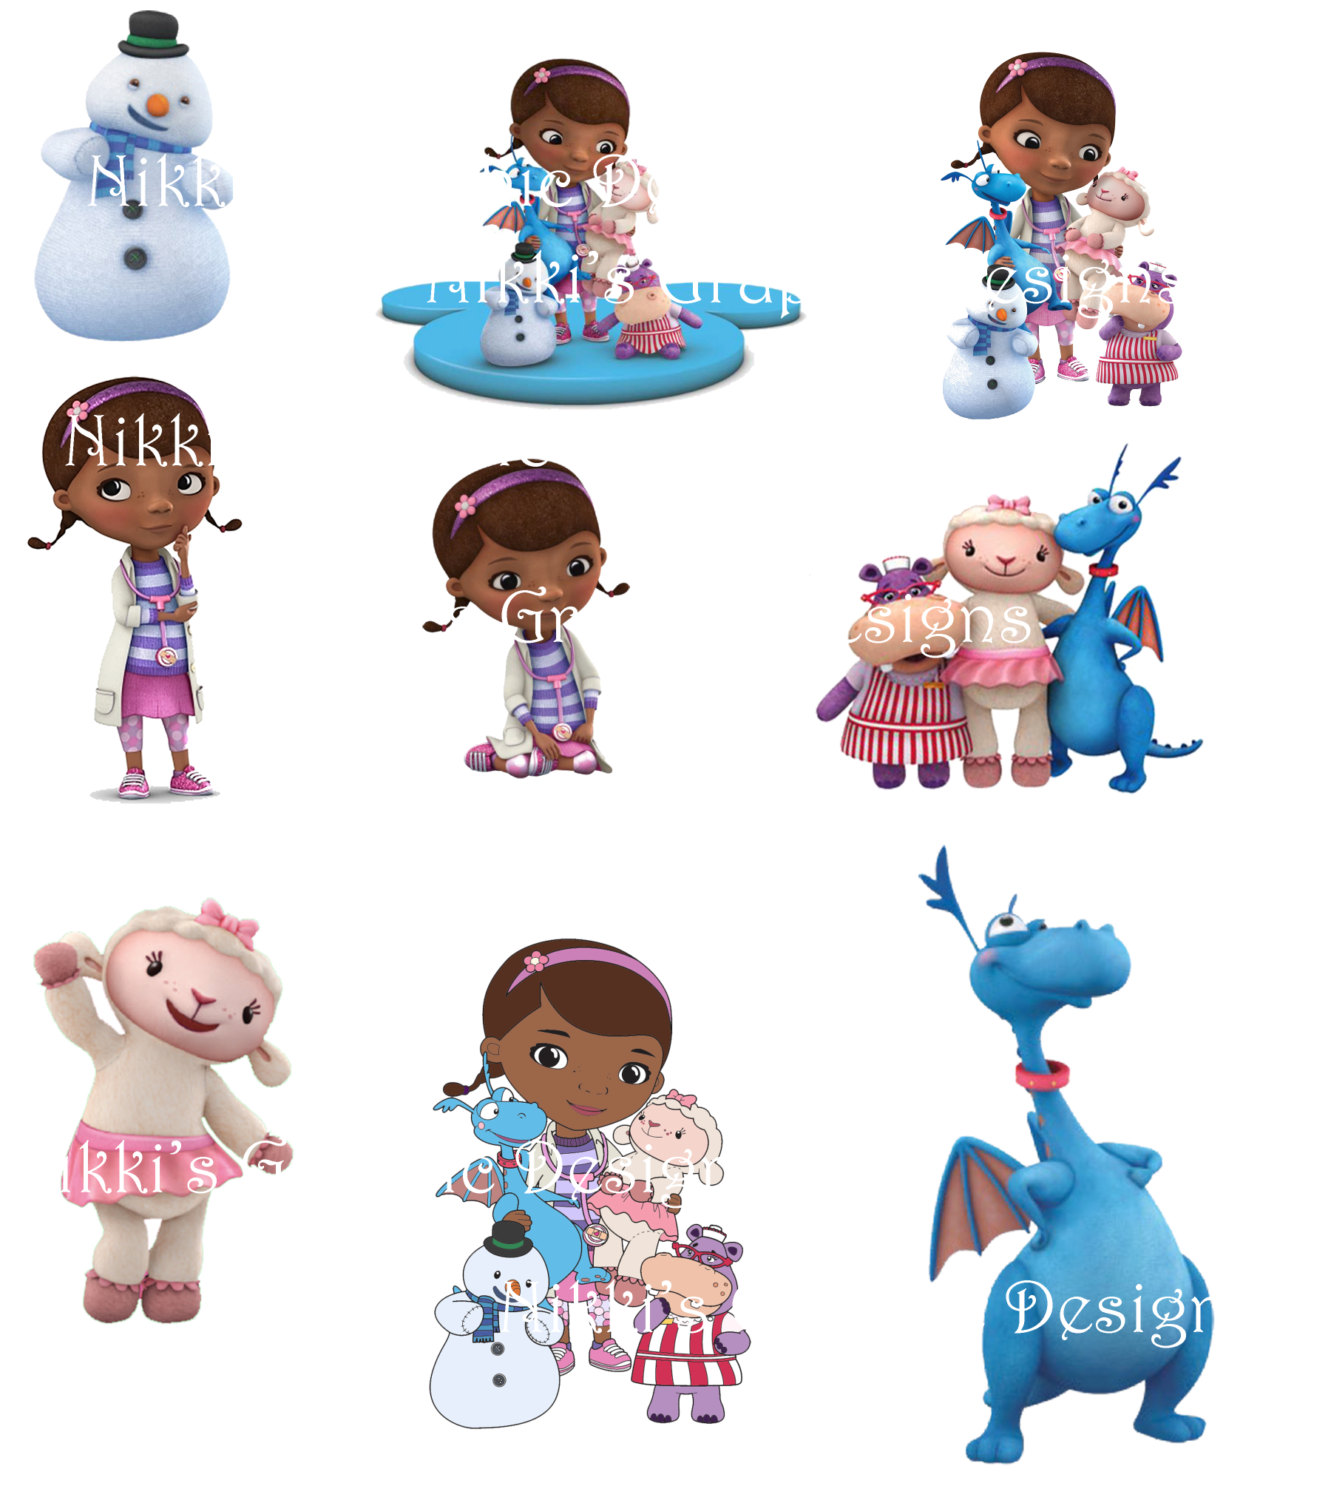 Doc mcstuffins and friends clipart banner freeuse Doc mcstuffins and friends clipart - ClipartFest banner freeuse